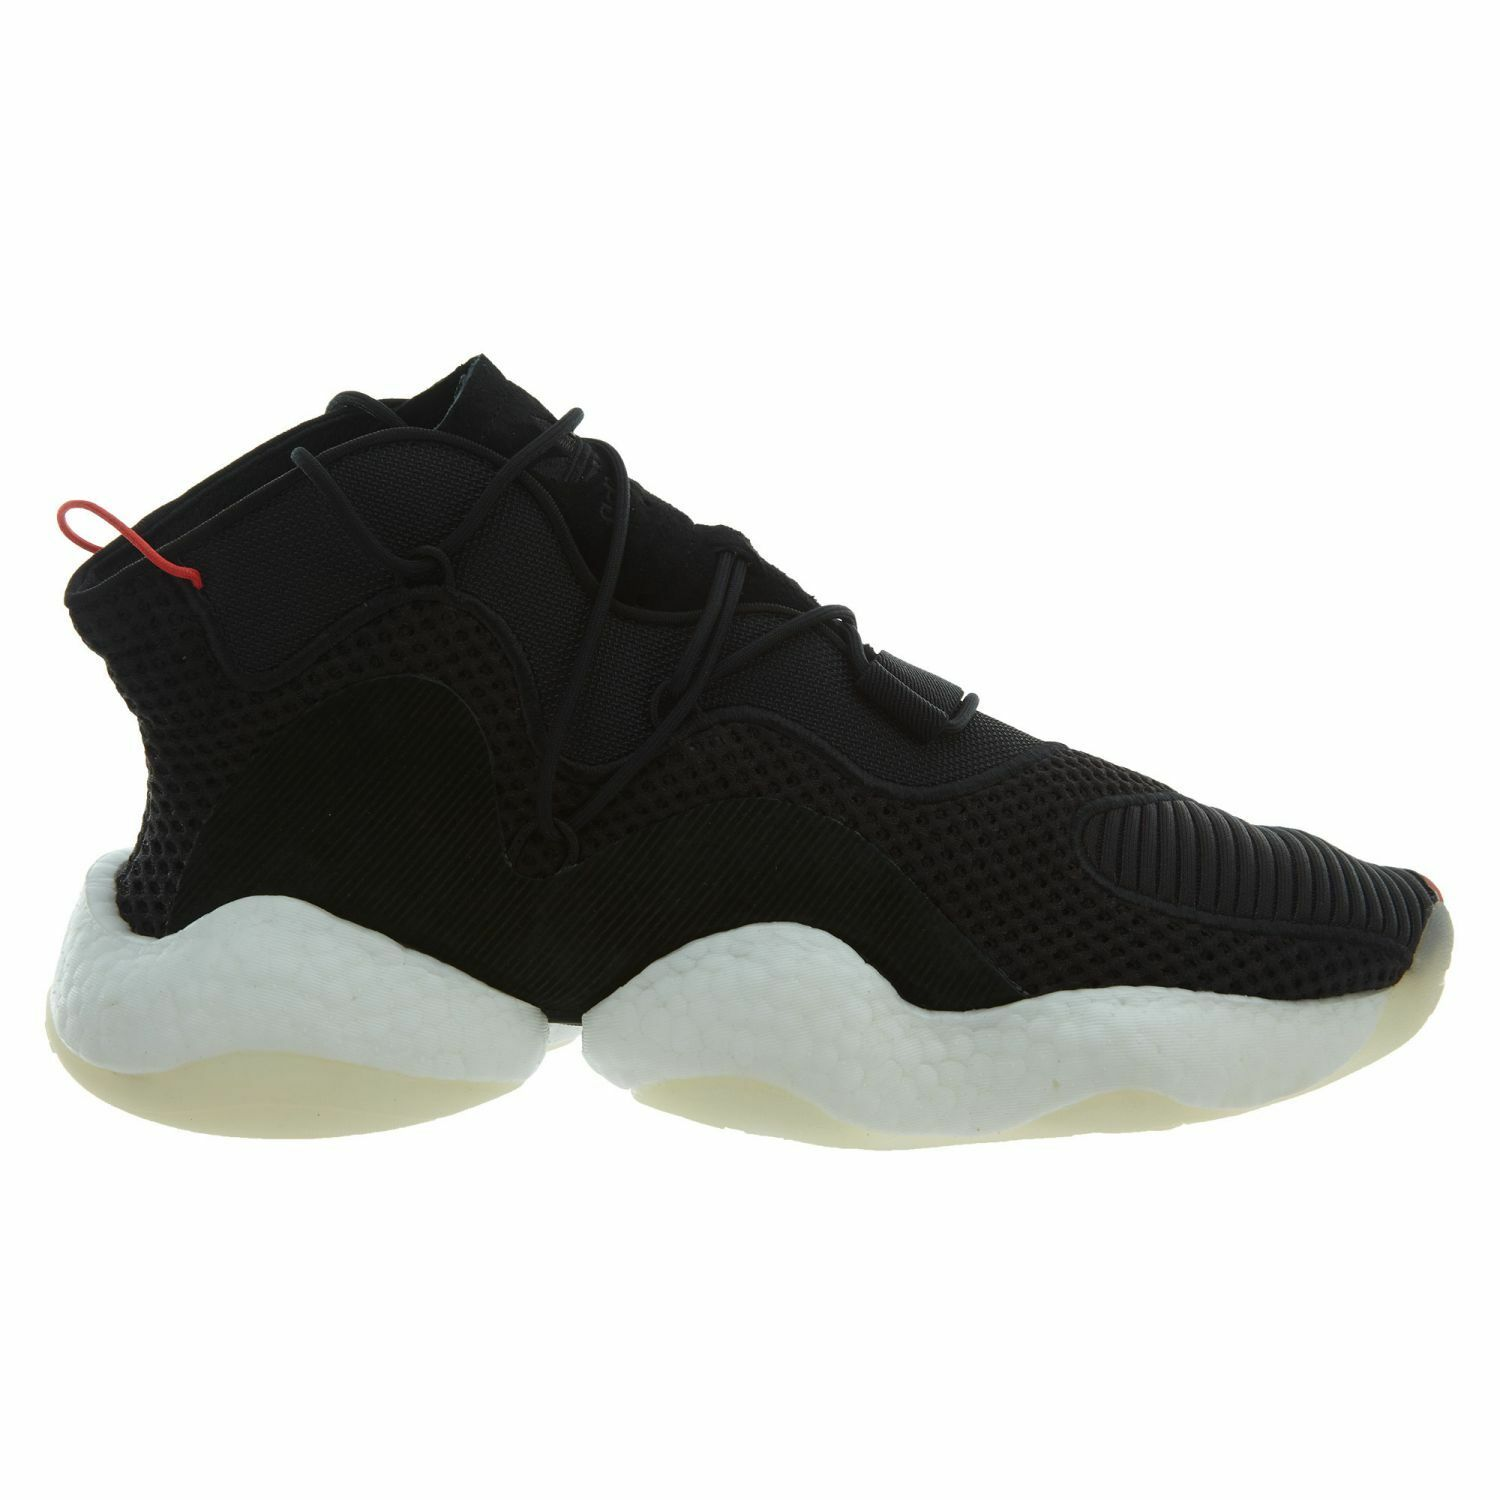 Adidas Crazy BYW Mens B37480 Black White Red Boost Basketball Shoes Comfortable